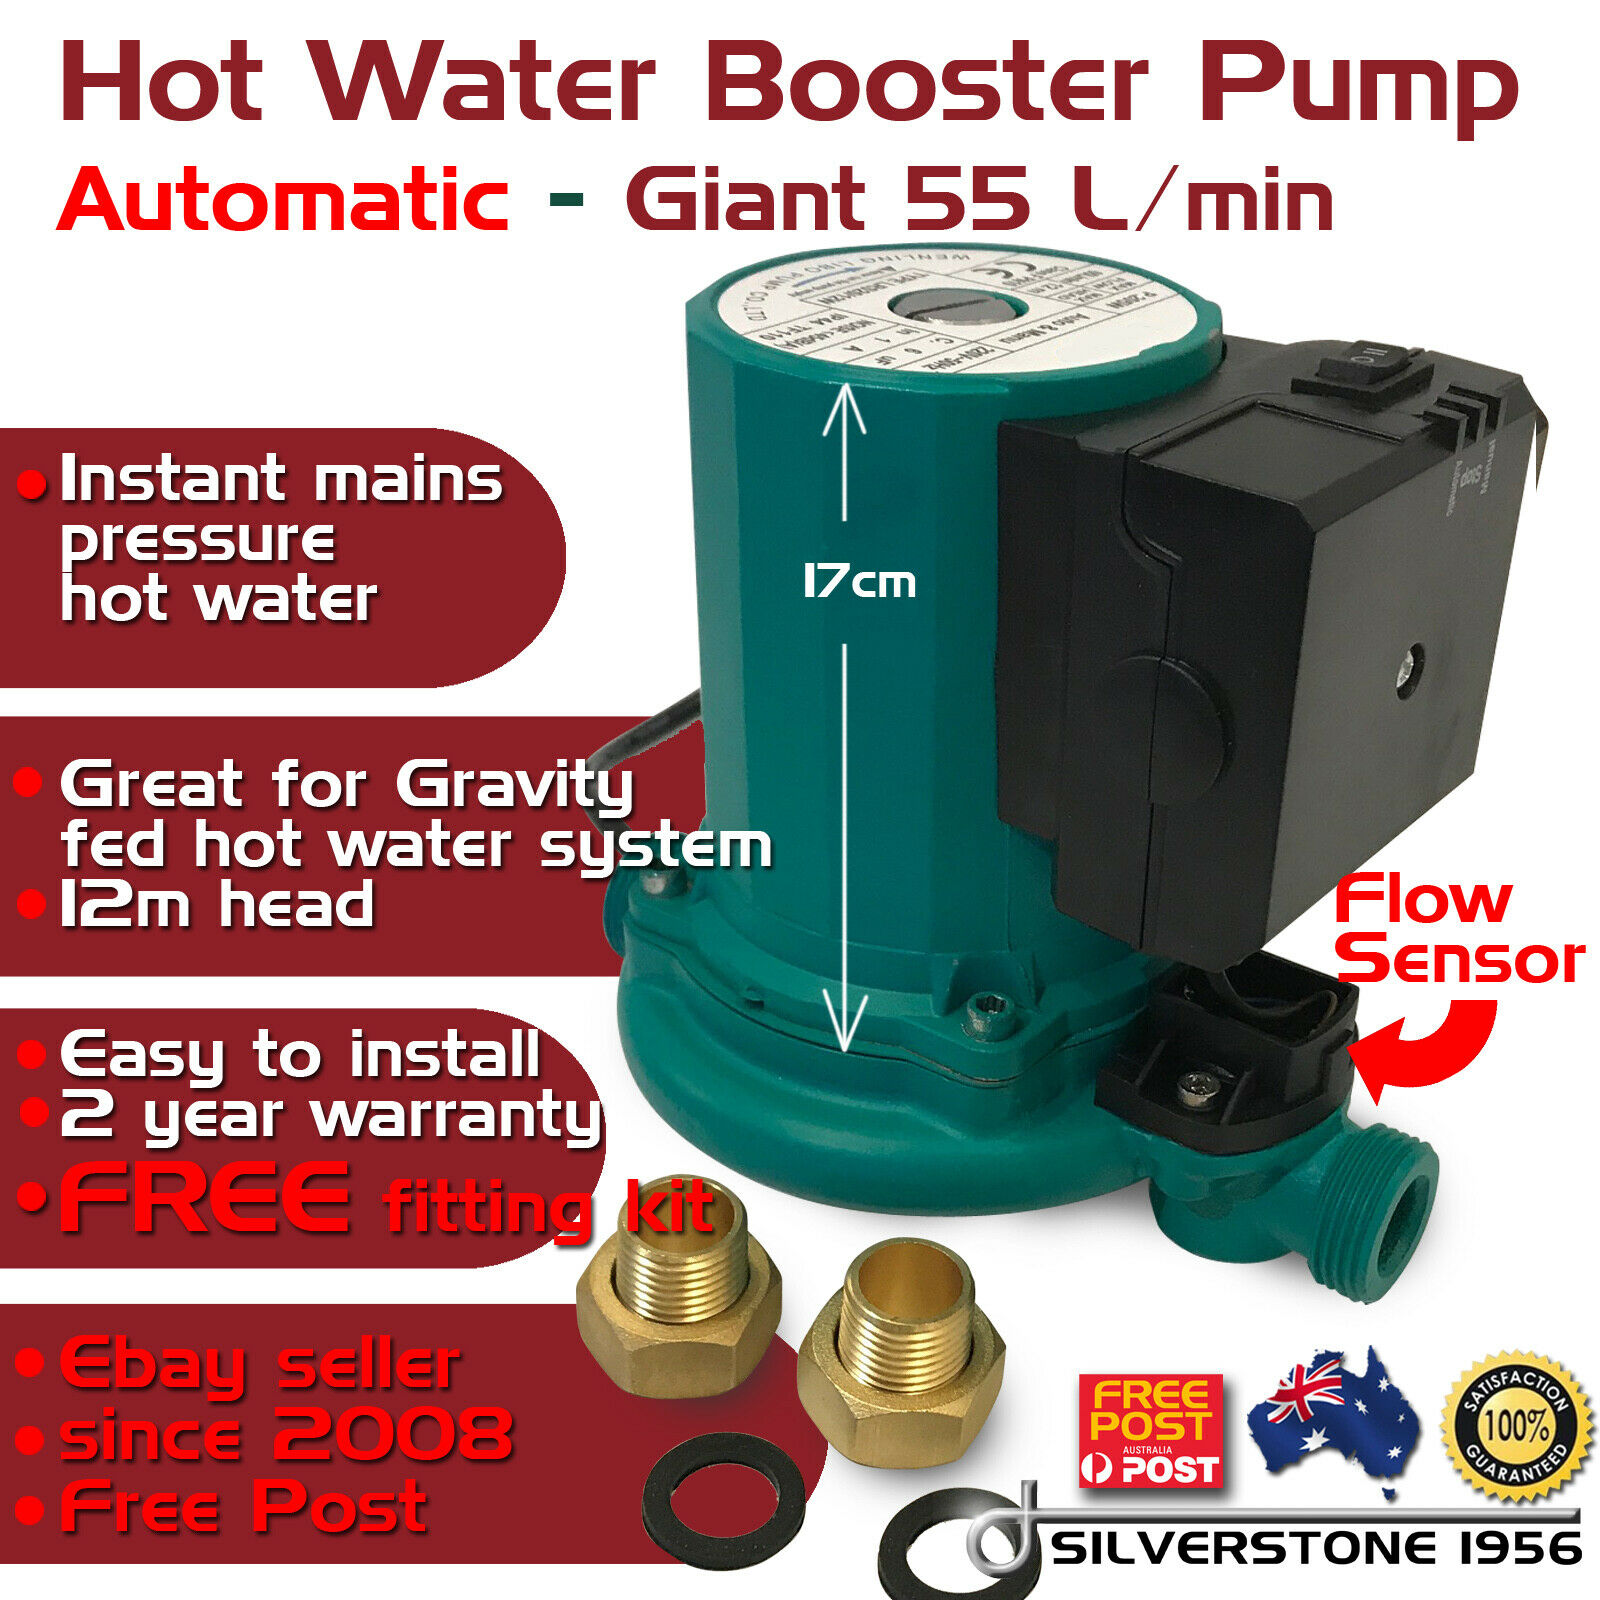 Giant Hot Water Shower AUTOMATIC ON OFF Booster Pump Gravity Fed System 55 L/Min